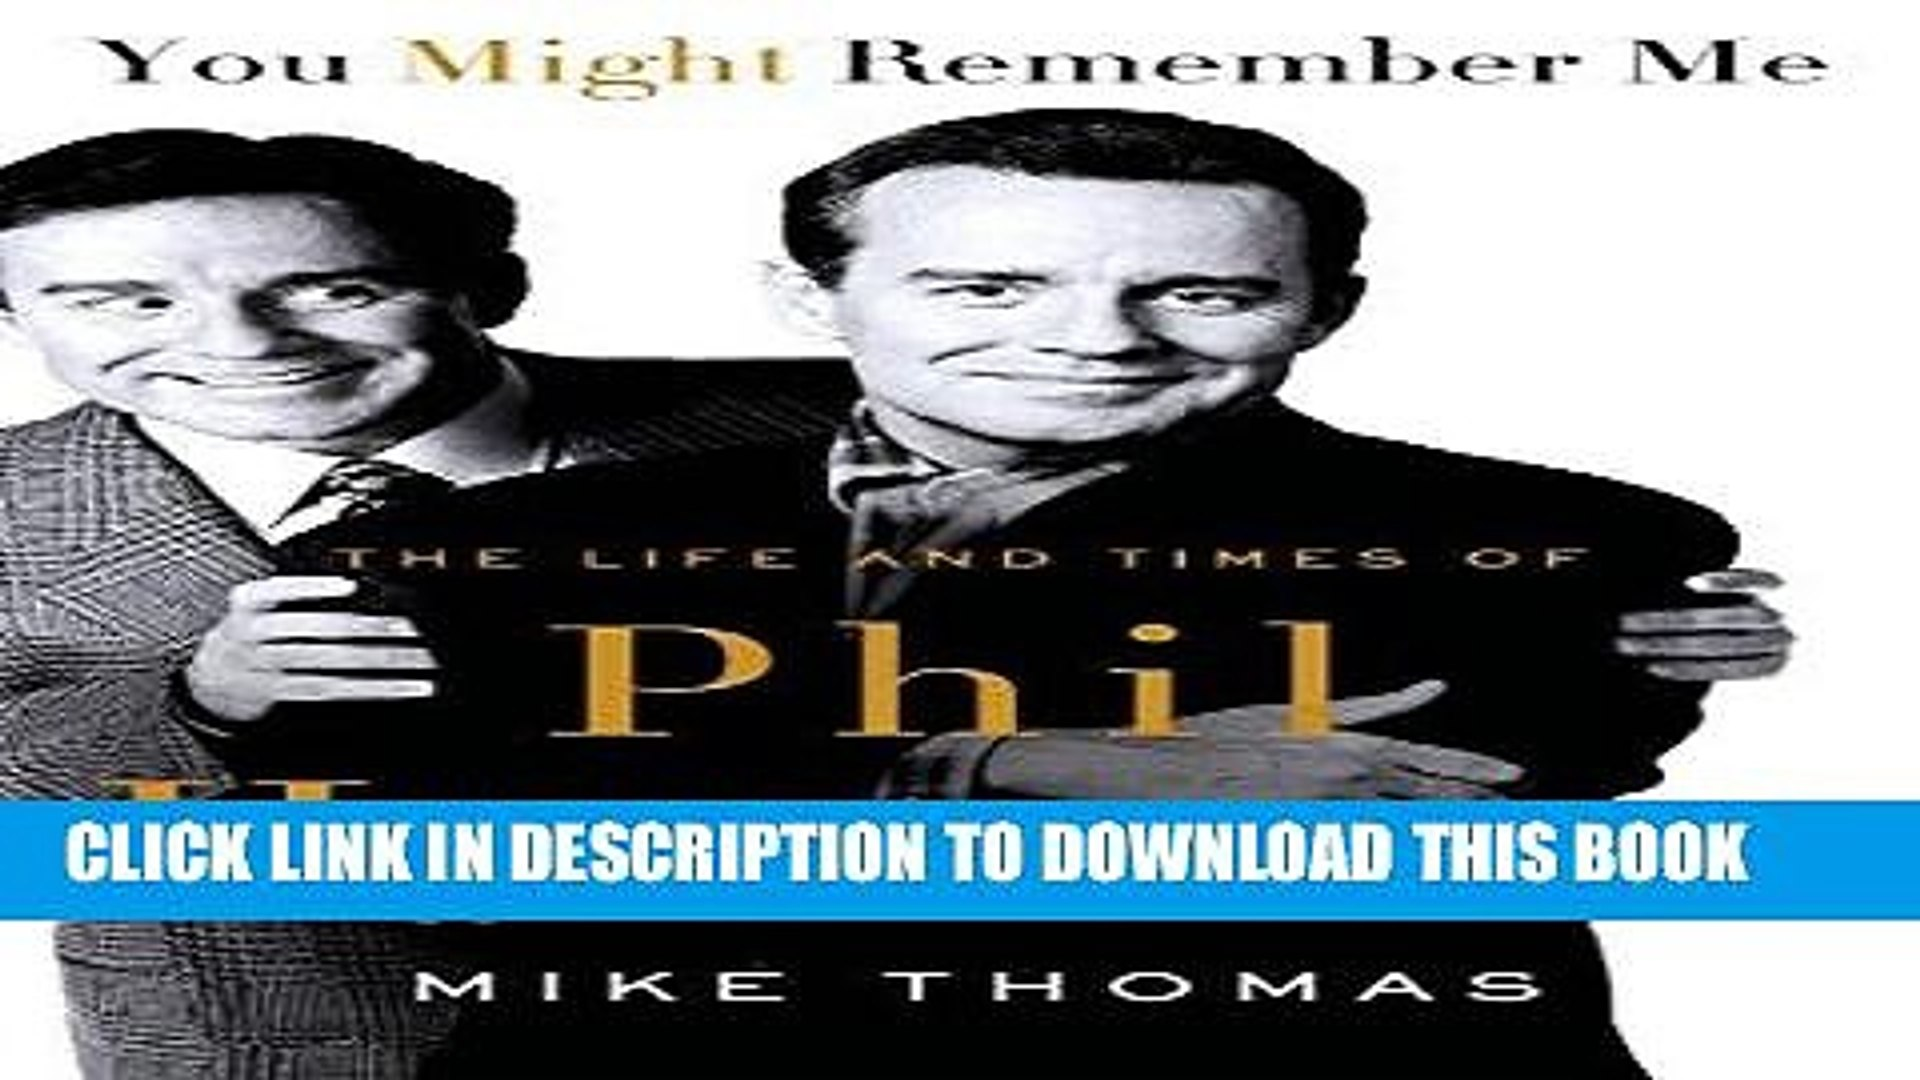 Books You Might Remember Me: The Life and Times of Phil Hartman Download Free